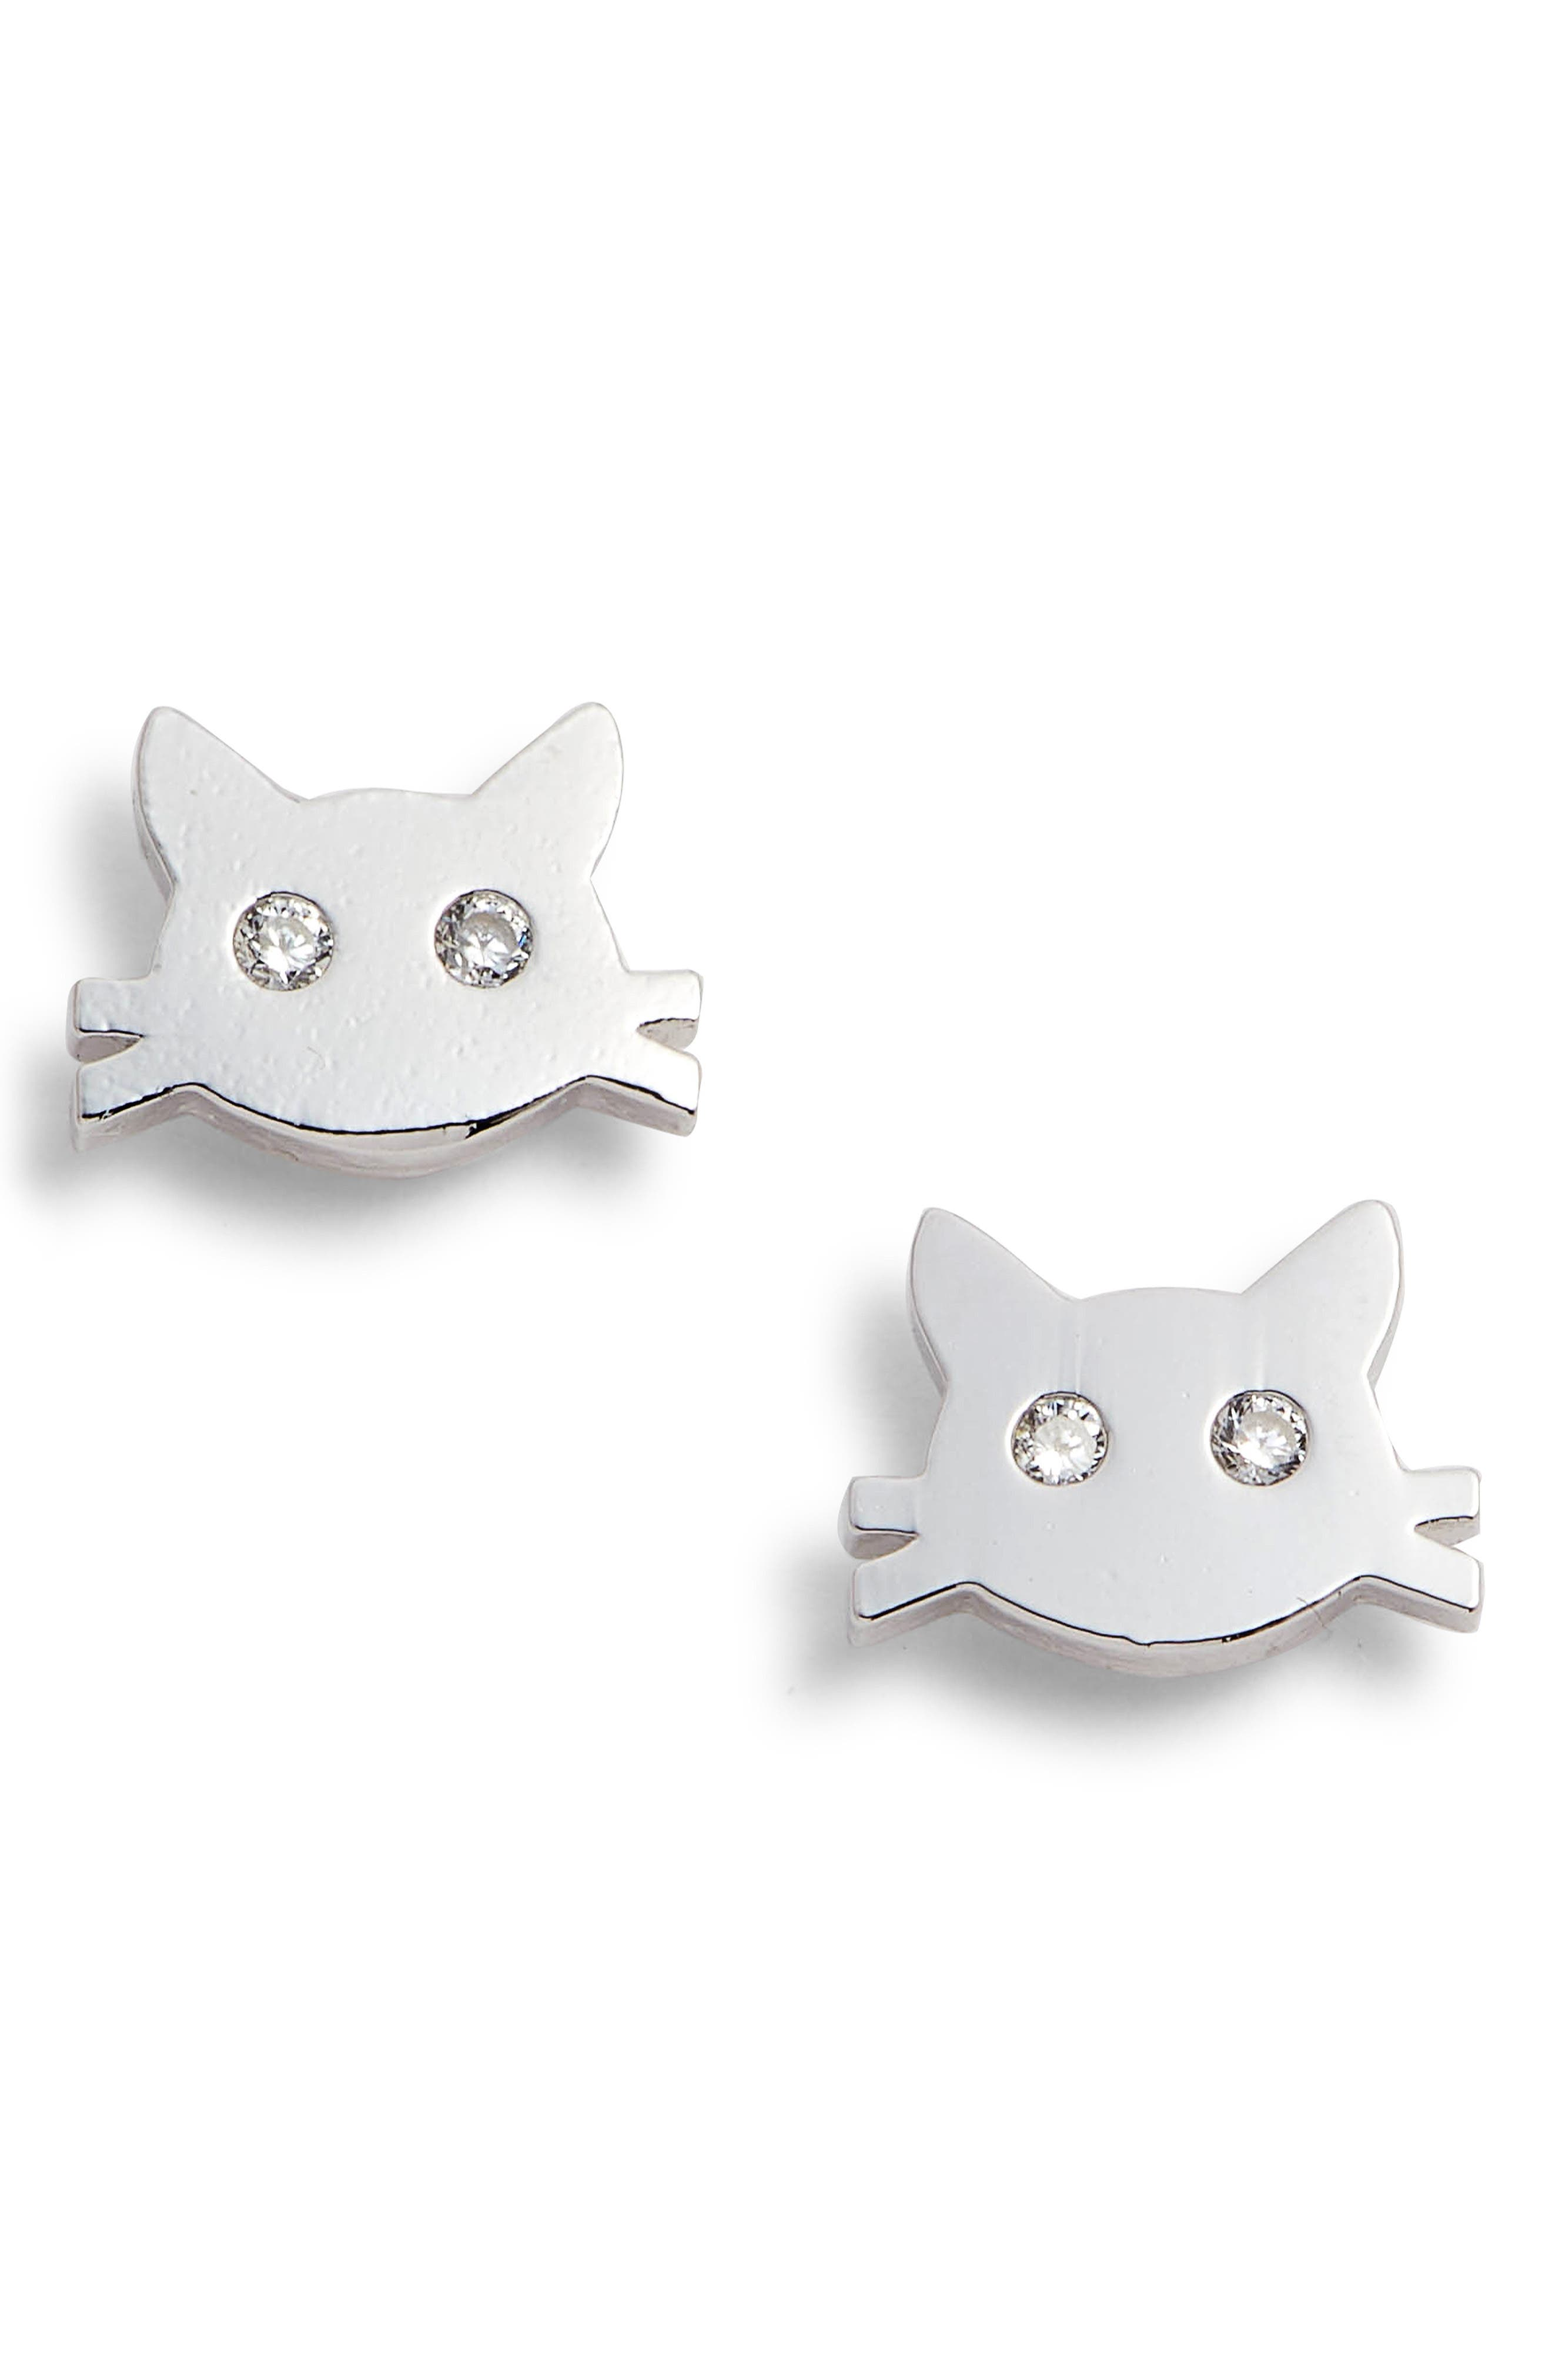 Crystal Cat Stud Earrings,                         Main,                         color, Silver